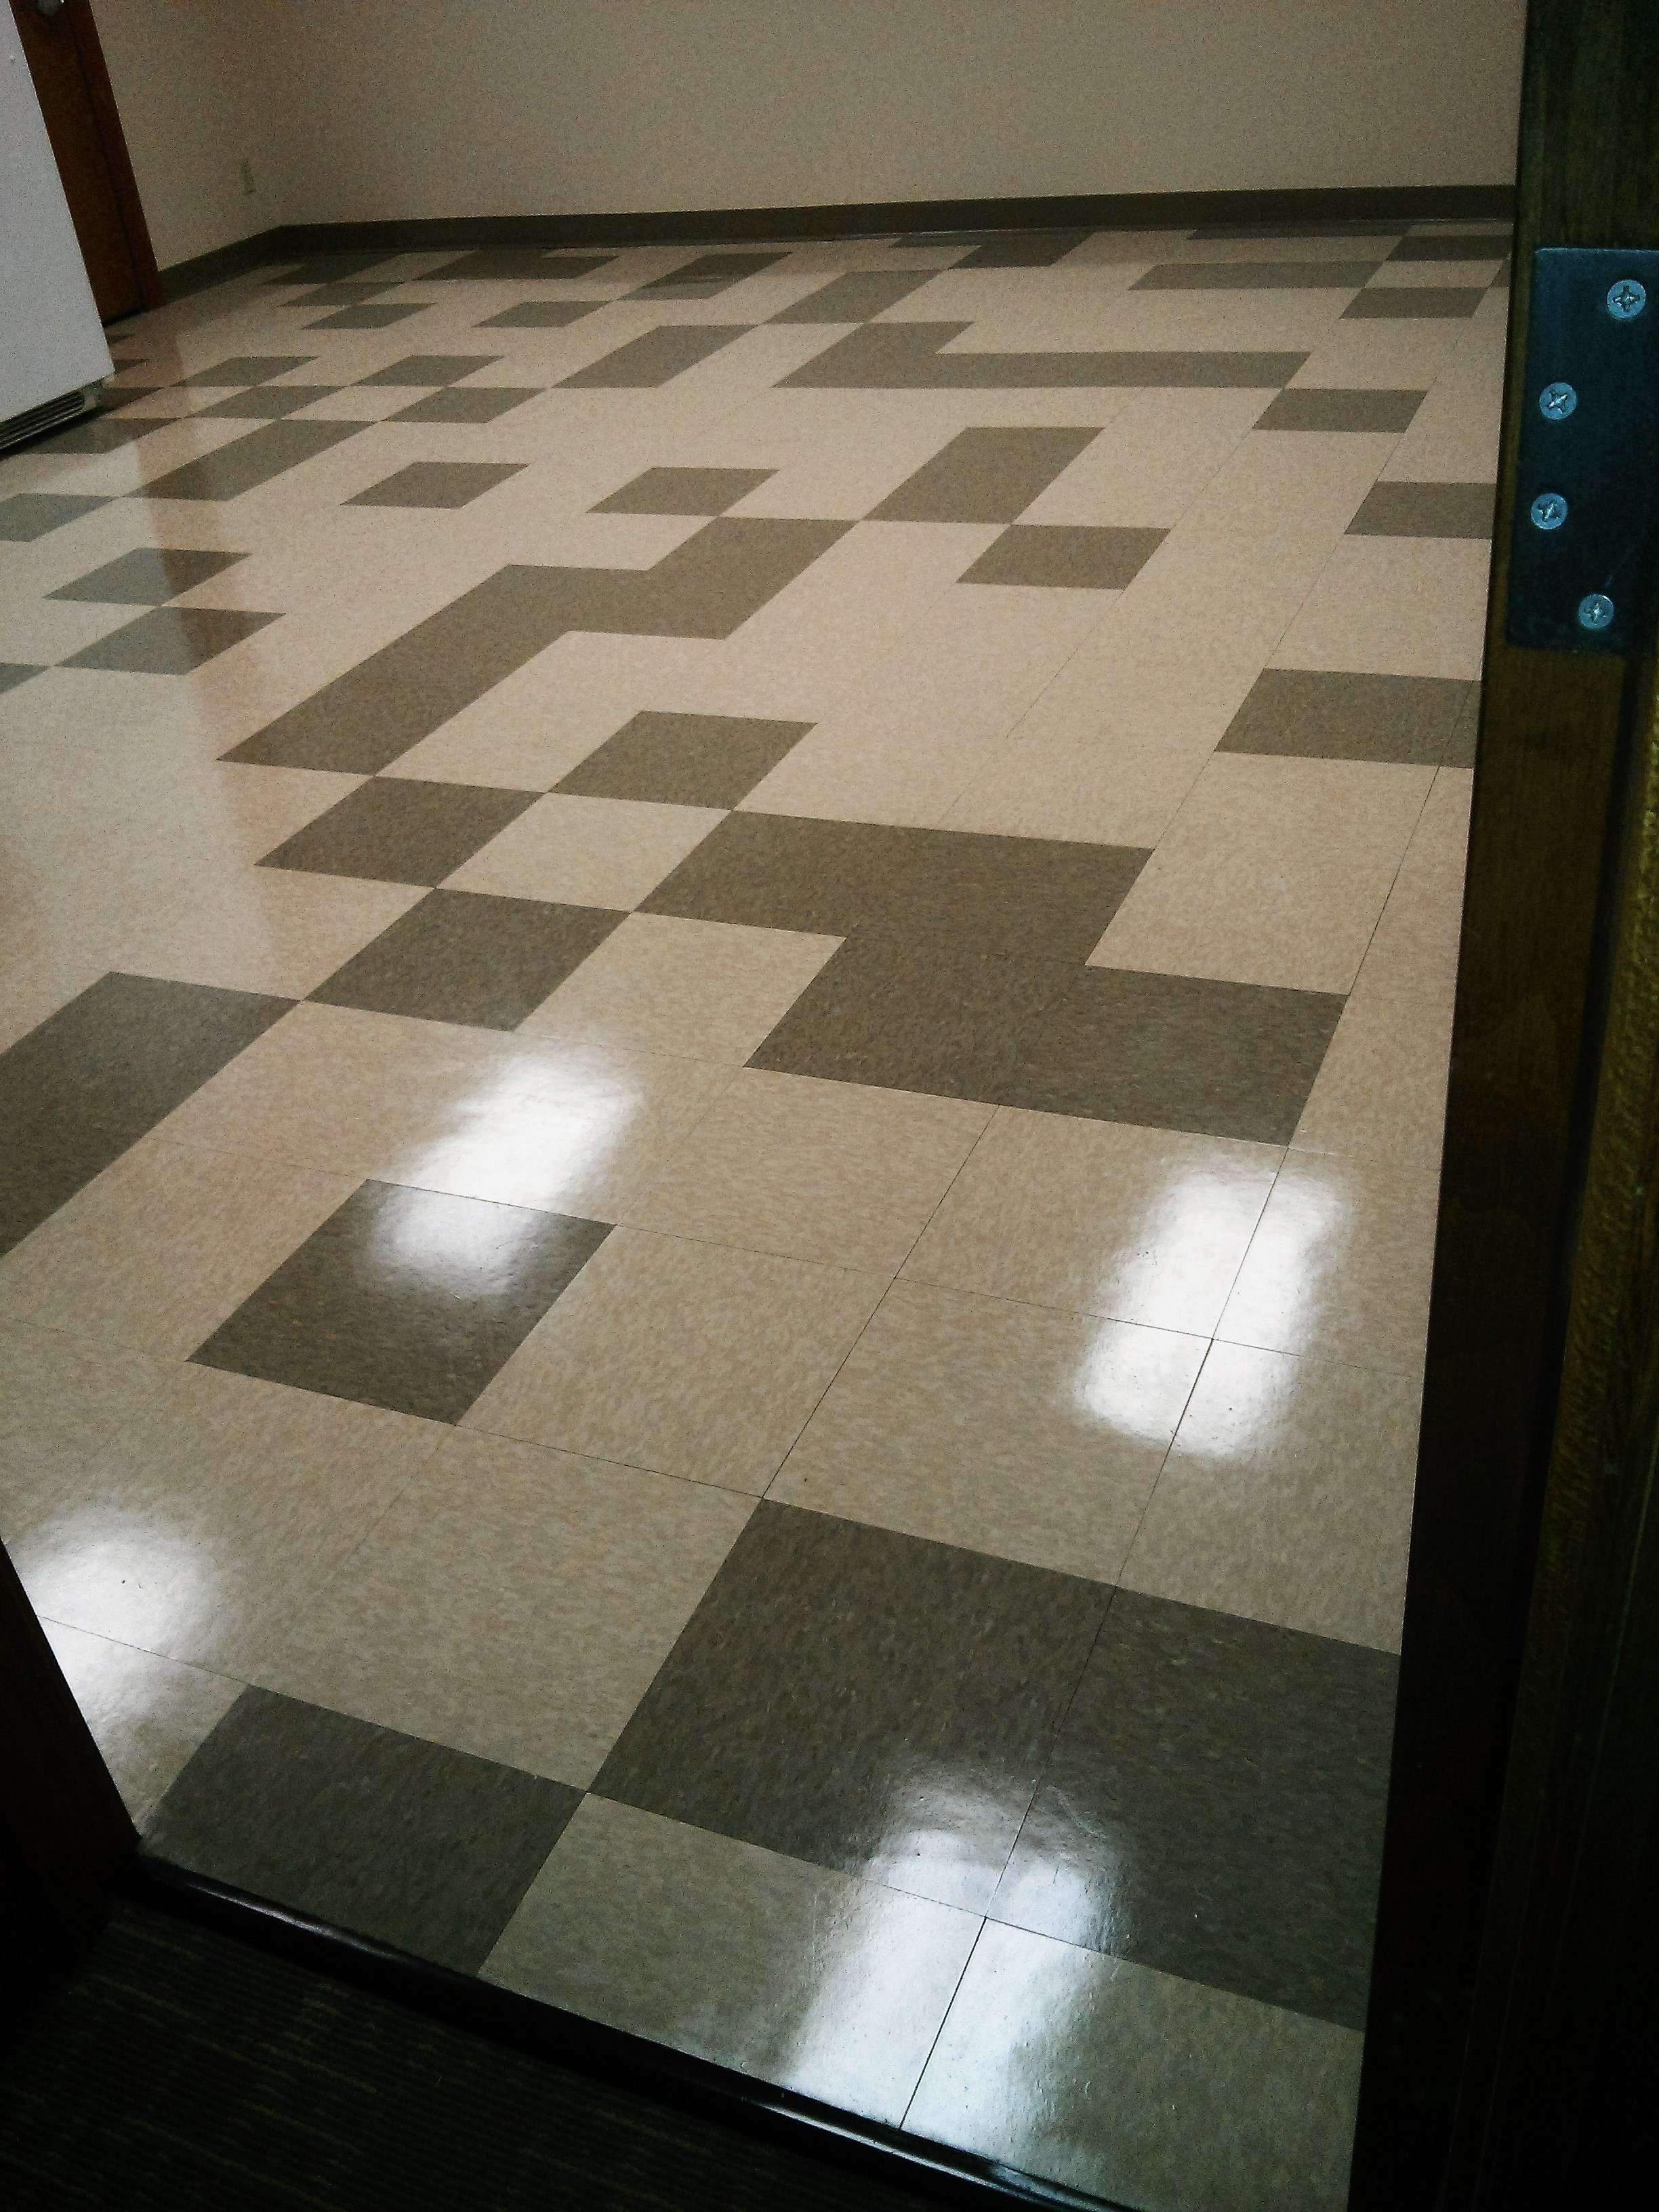 Magnificent 12 X 12 Floor Tile Small 1200 X 600 Ceiling Tiles Rectangular 12X12 Ceiling Tiles Home Depot 12X12 Ceramic Tiles Youthful 12X24 Ceramic Floor Tile Purple12X24 Ceramic Tile Patterns VCT Floor Tile Floor Strip And Recoat Job In Mounds View, MN